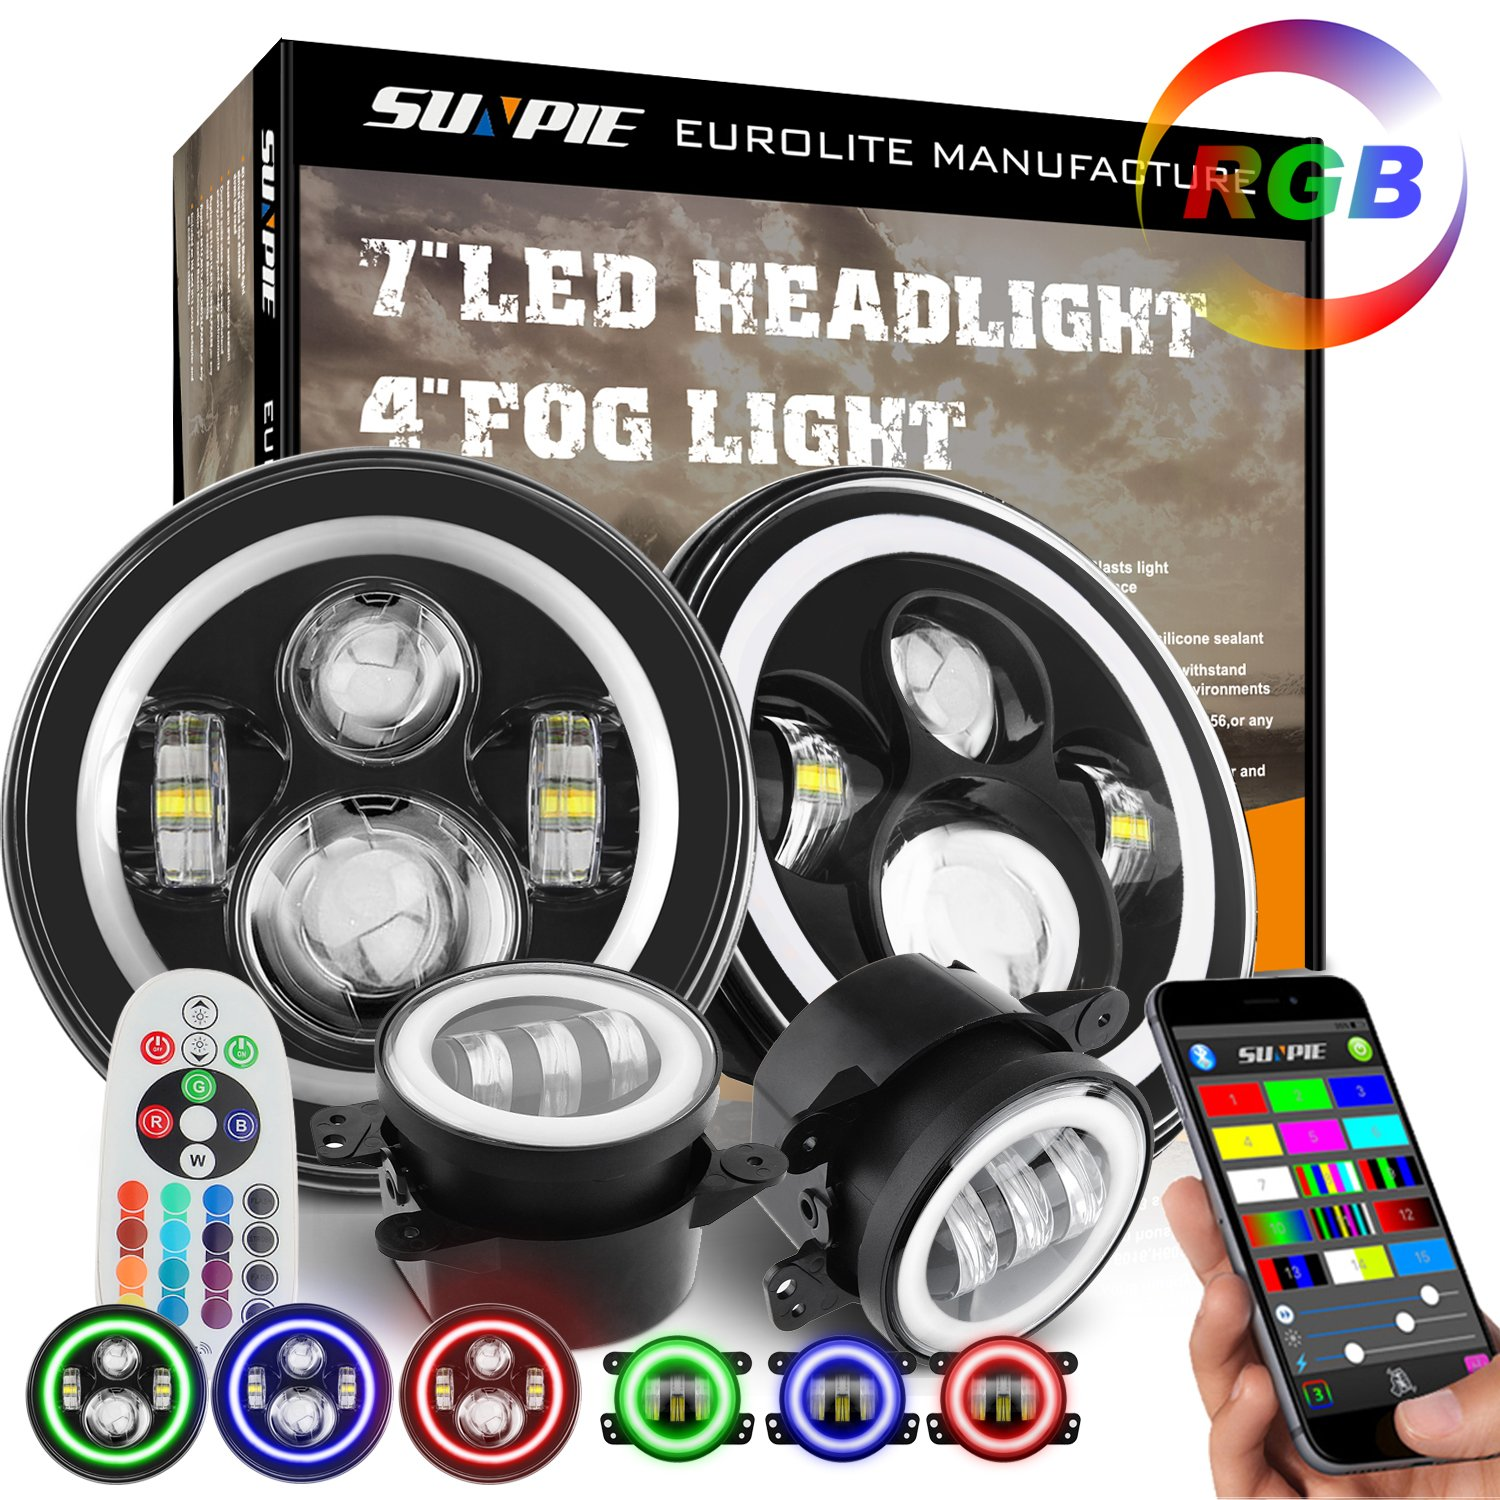 7'' LED Headlights with RGB Halo + 4'' LED Fog Lights for Jeep Wrangler 1997-2017 JK TJ LJ Front Bumper Lamp Driving Lights by Bluetooth Remote Control